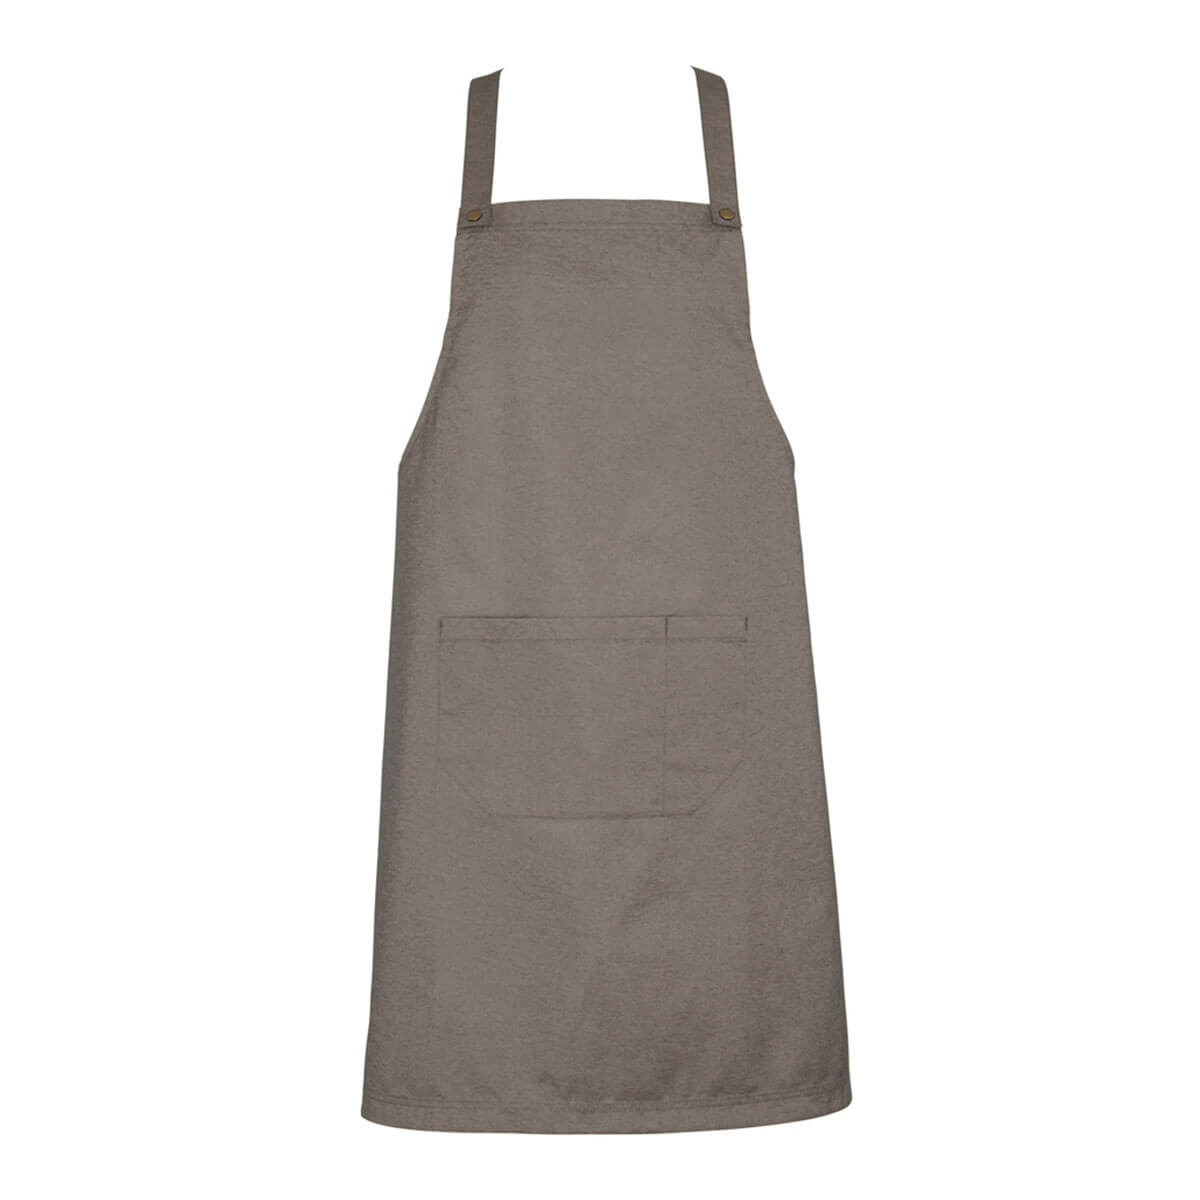 Urban Bib Apron-Natural